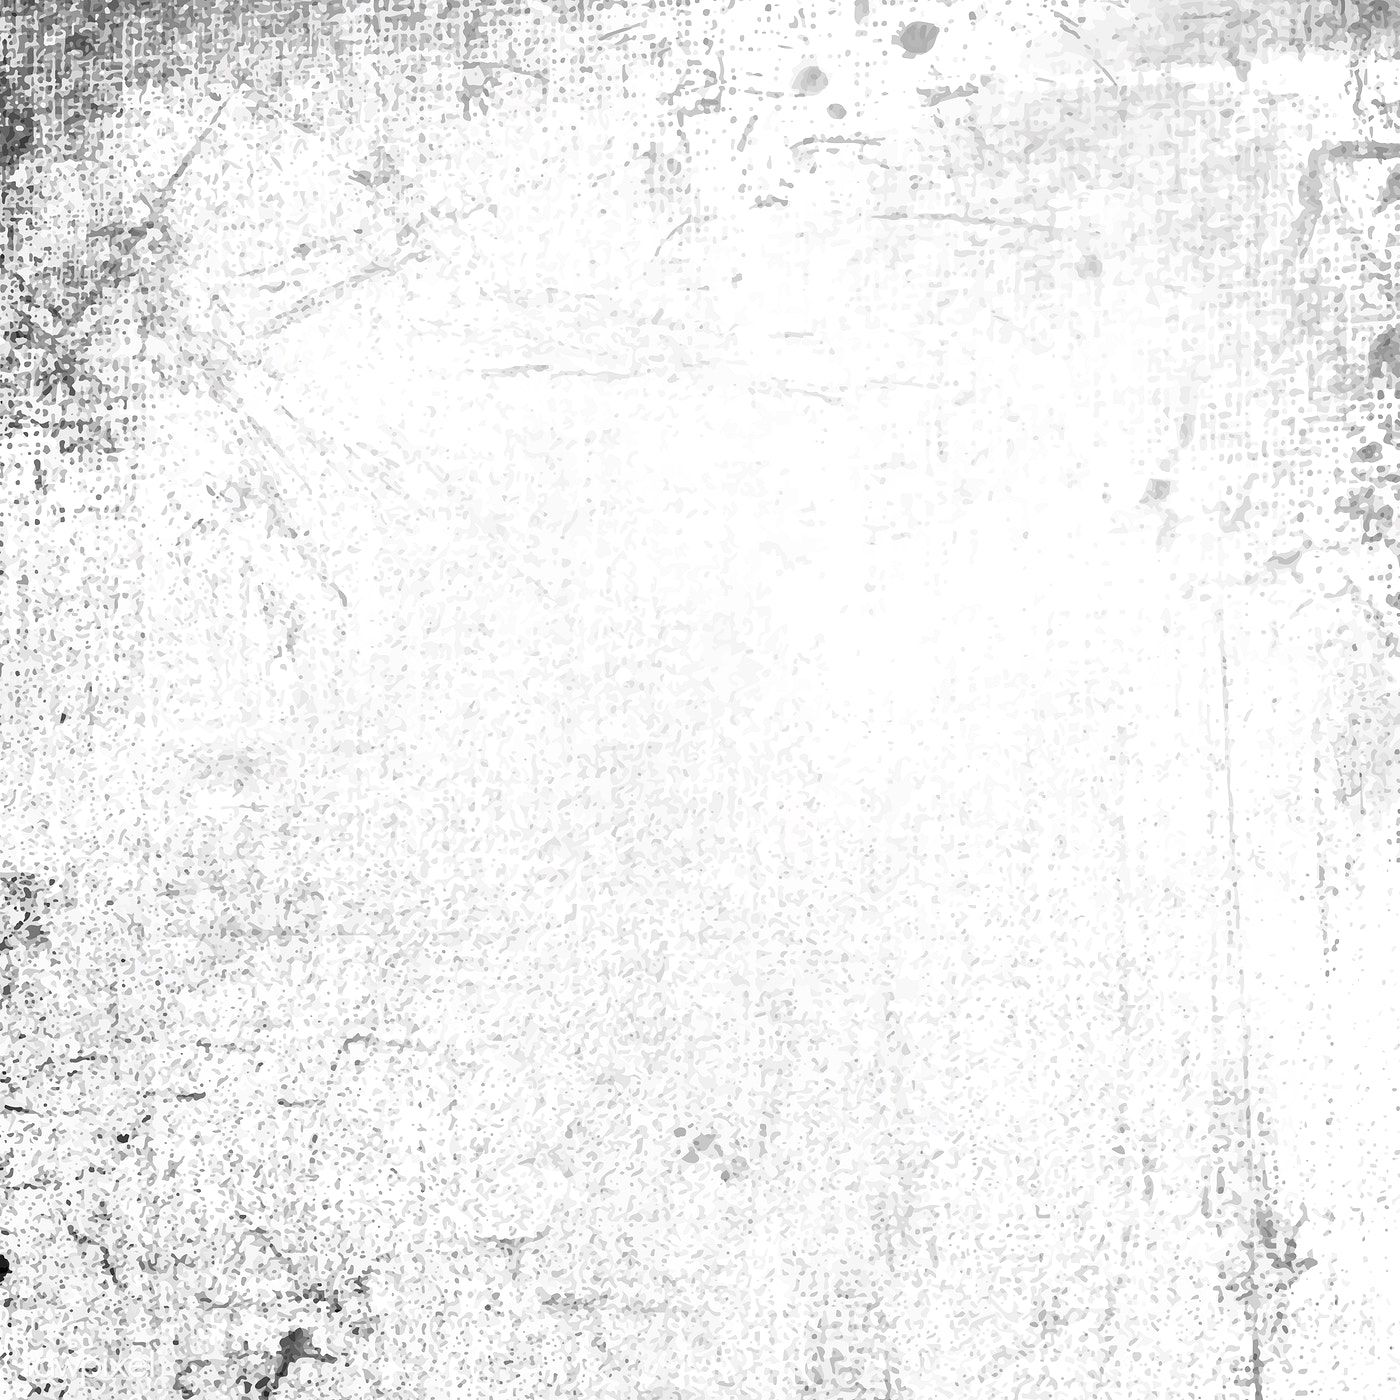 Grunge black and white distressed textured background | free image by  rawpixel.com / Niwat | Stock background, Textured background, Distressed  texture